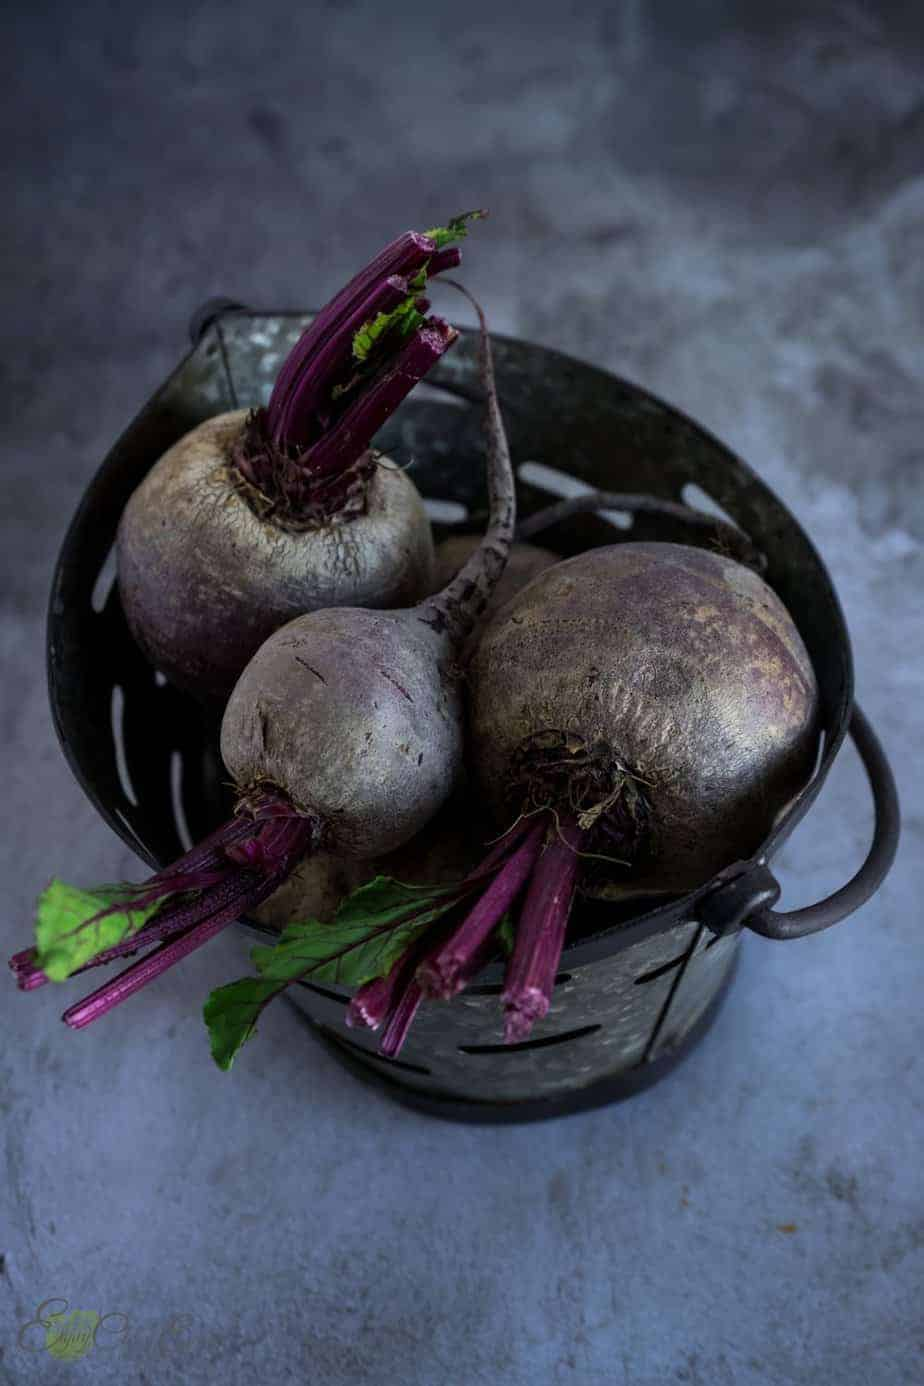 Raw beets in a metal basket